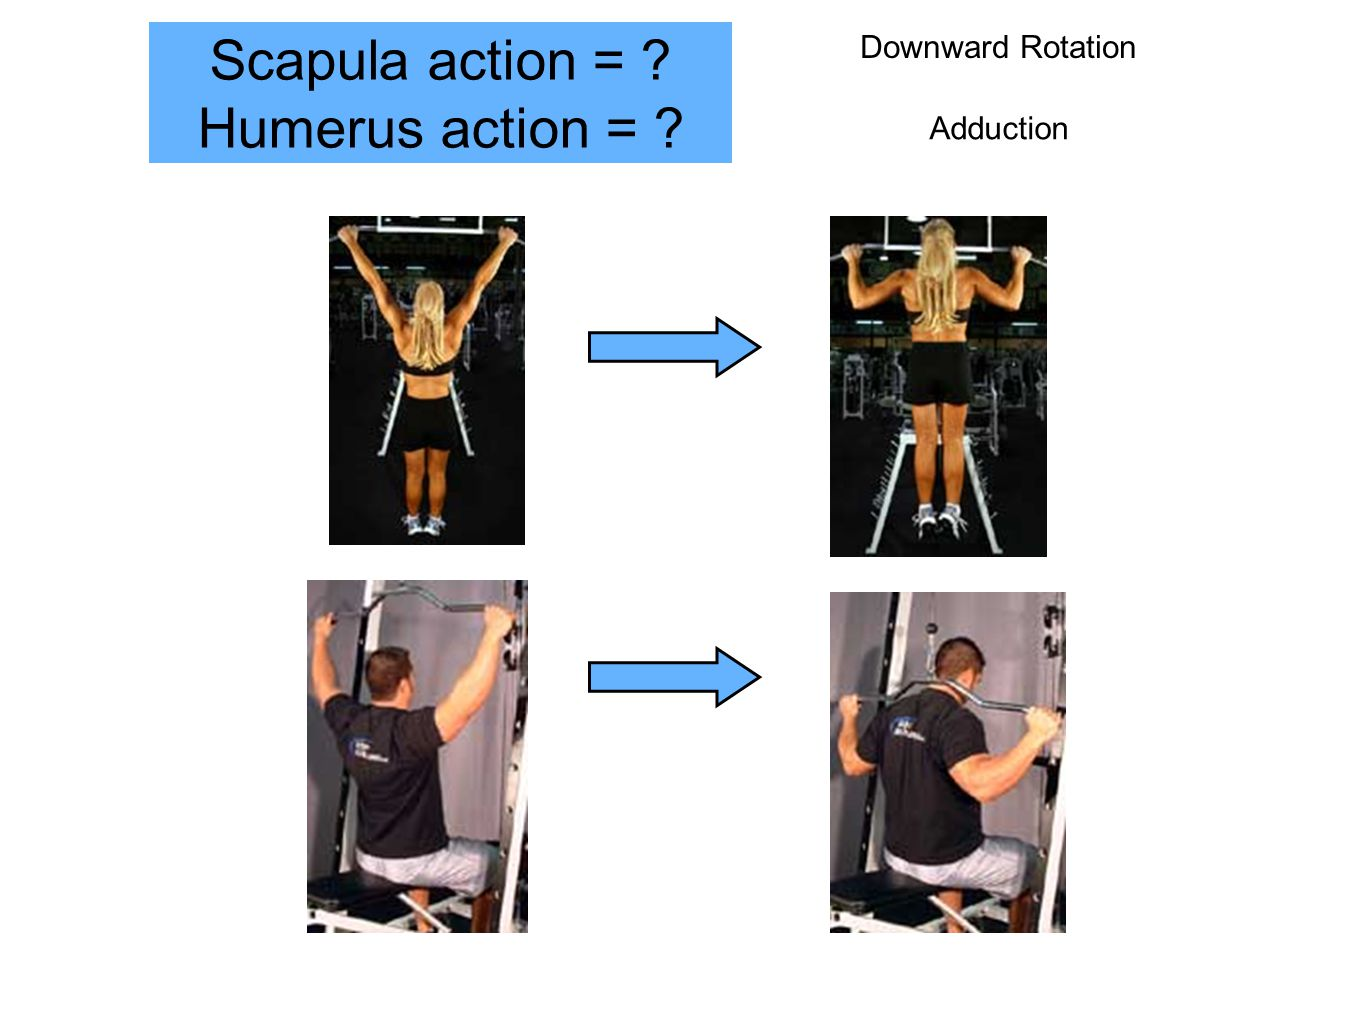 Scapula action = Humerus action = Downward Rotation Adduction